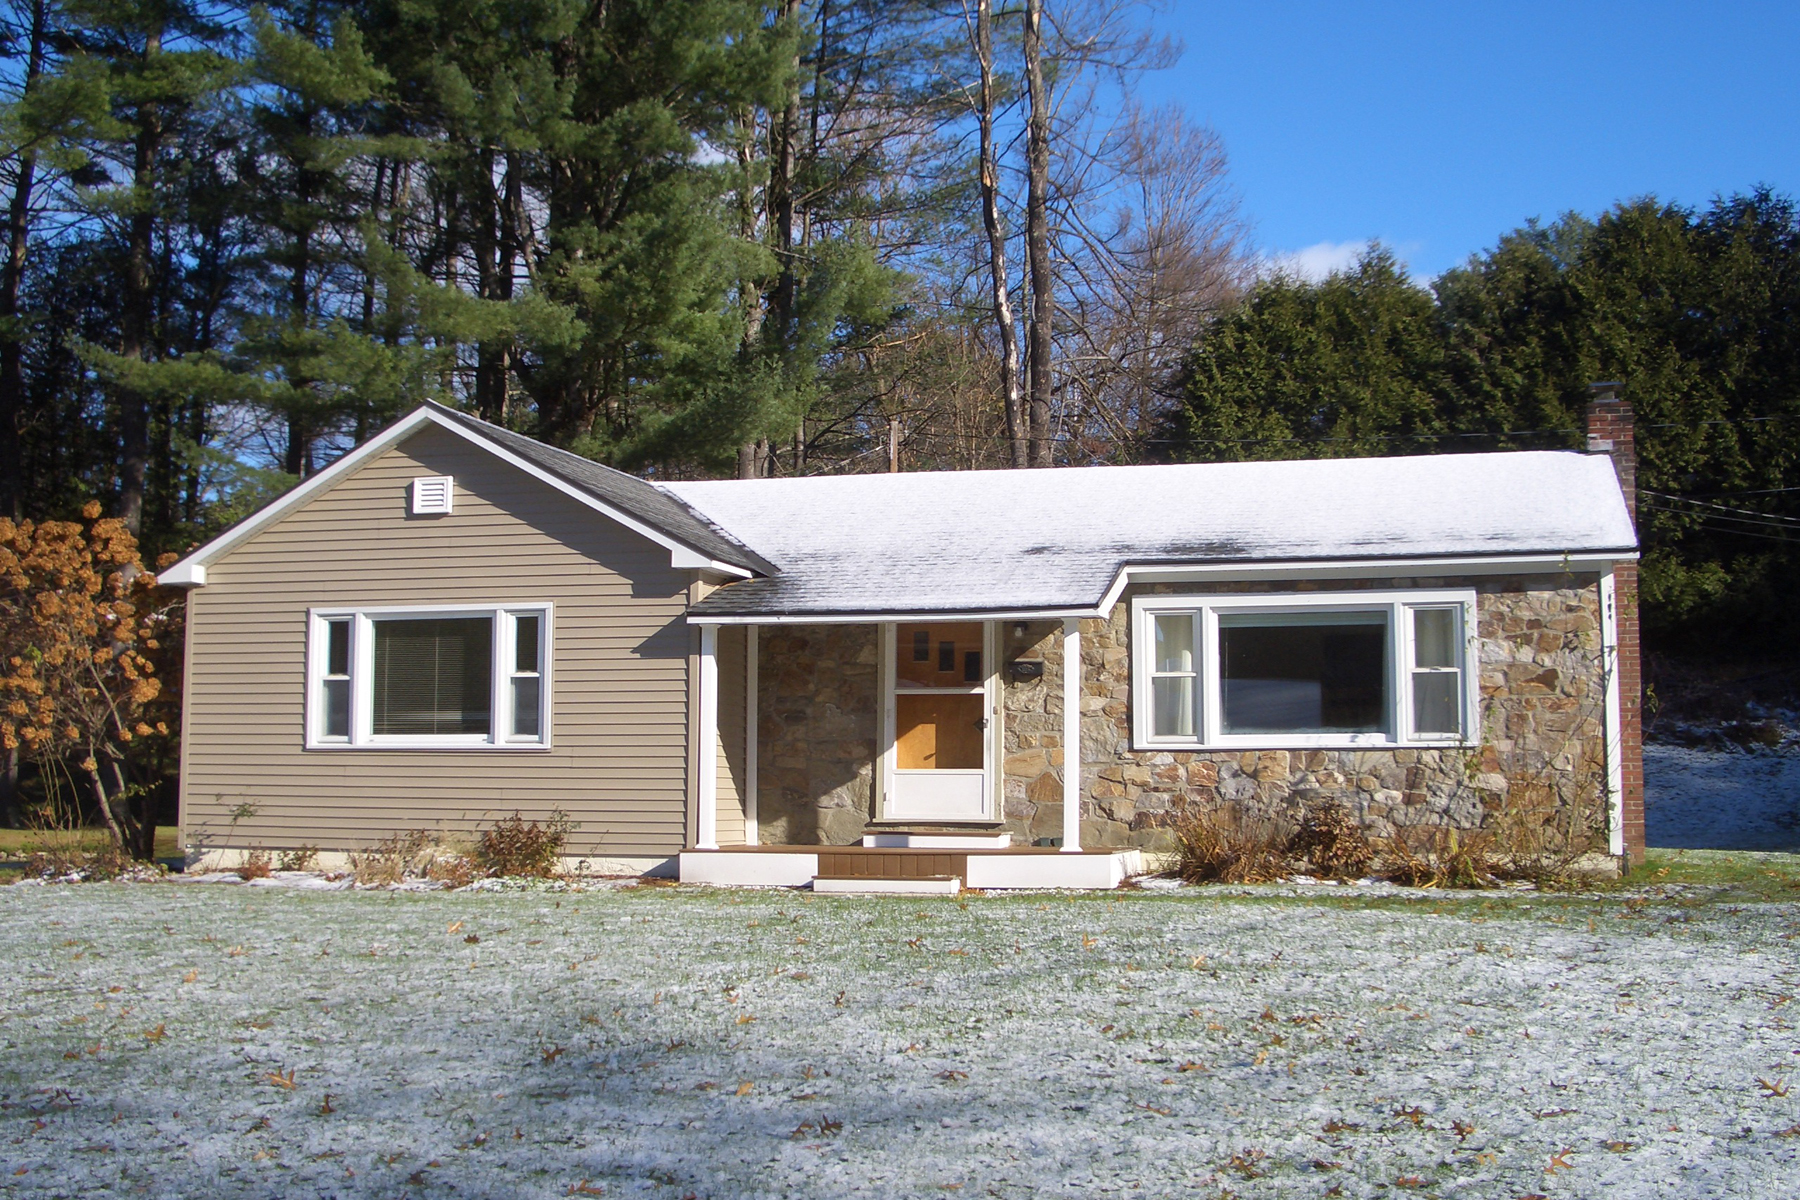 Single Family Home for Sale at Chatterton Park Ranch 88 Park St Proctor, Vermont 05765 United States